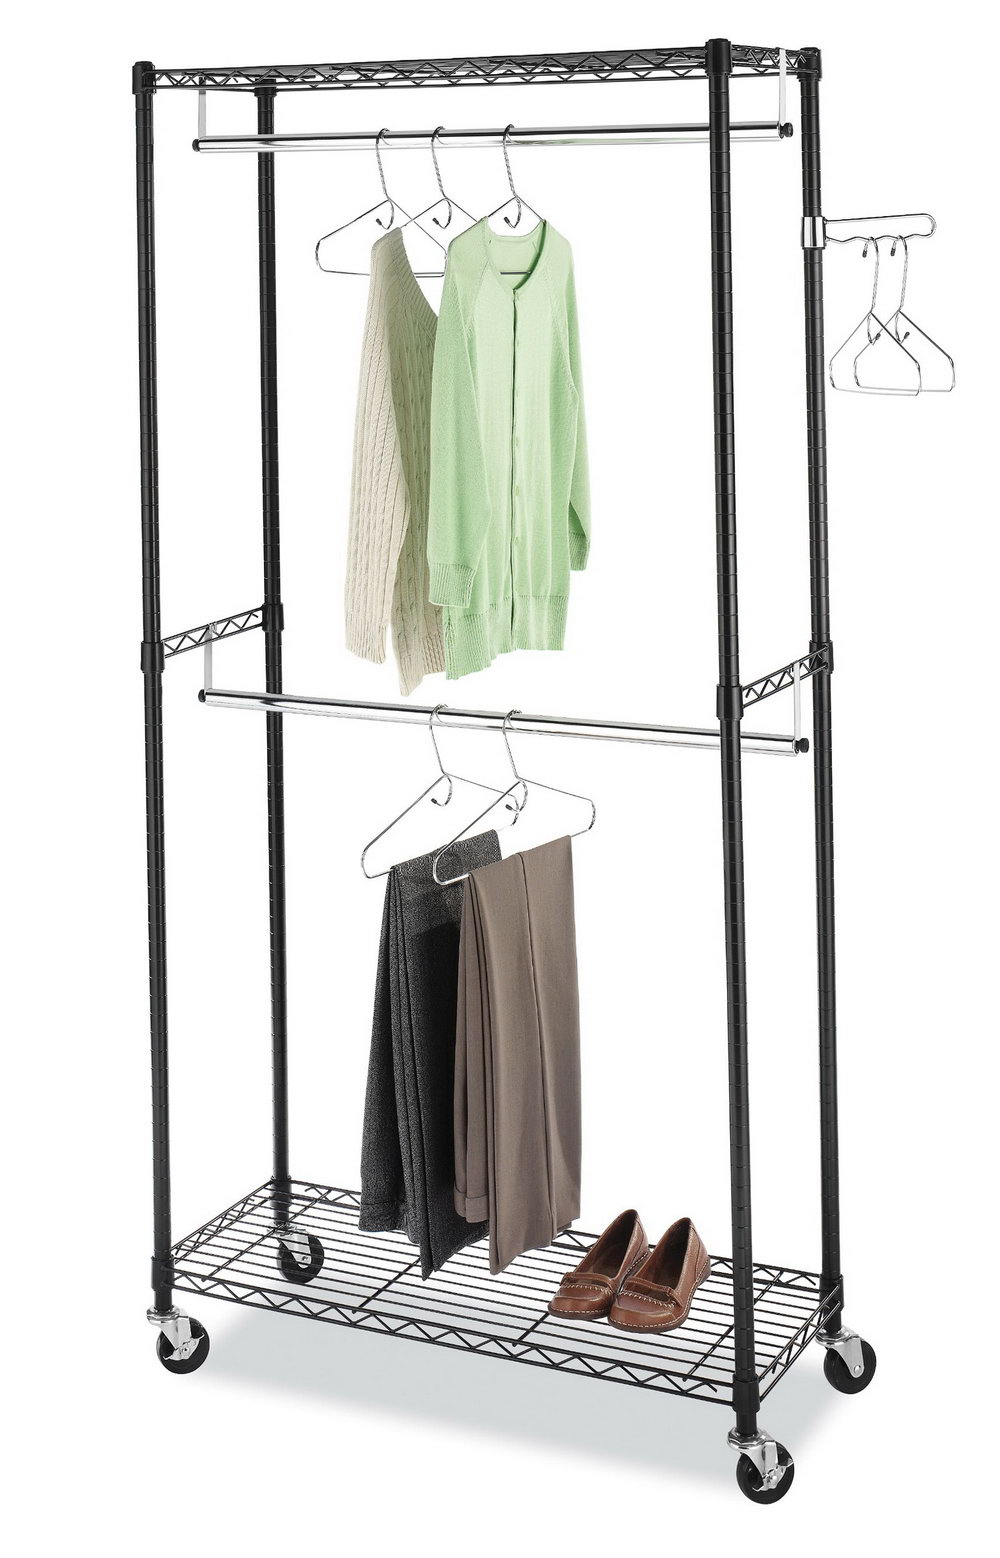 Double Hanging Closet Rod Height